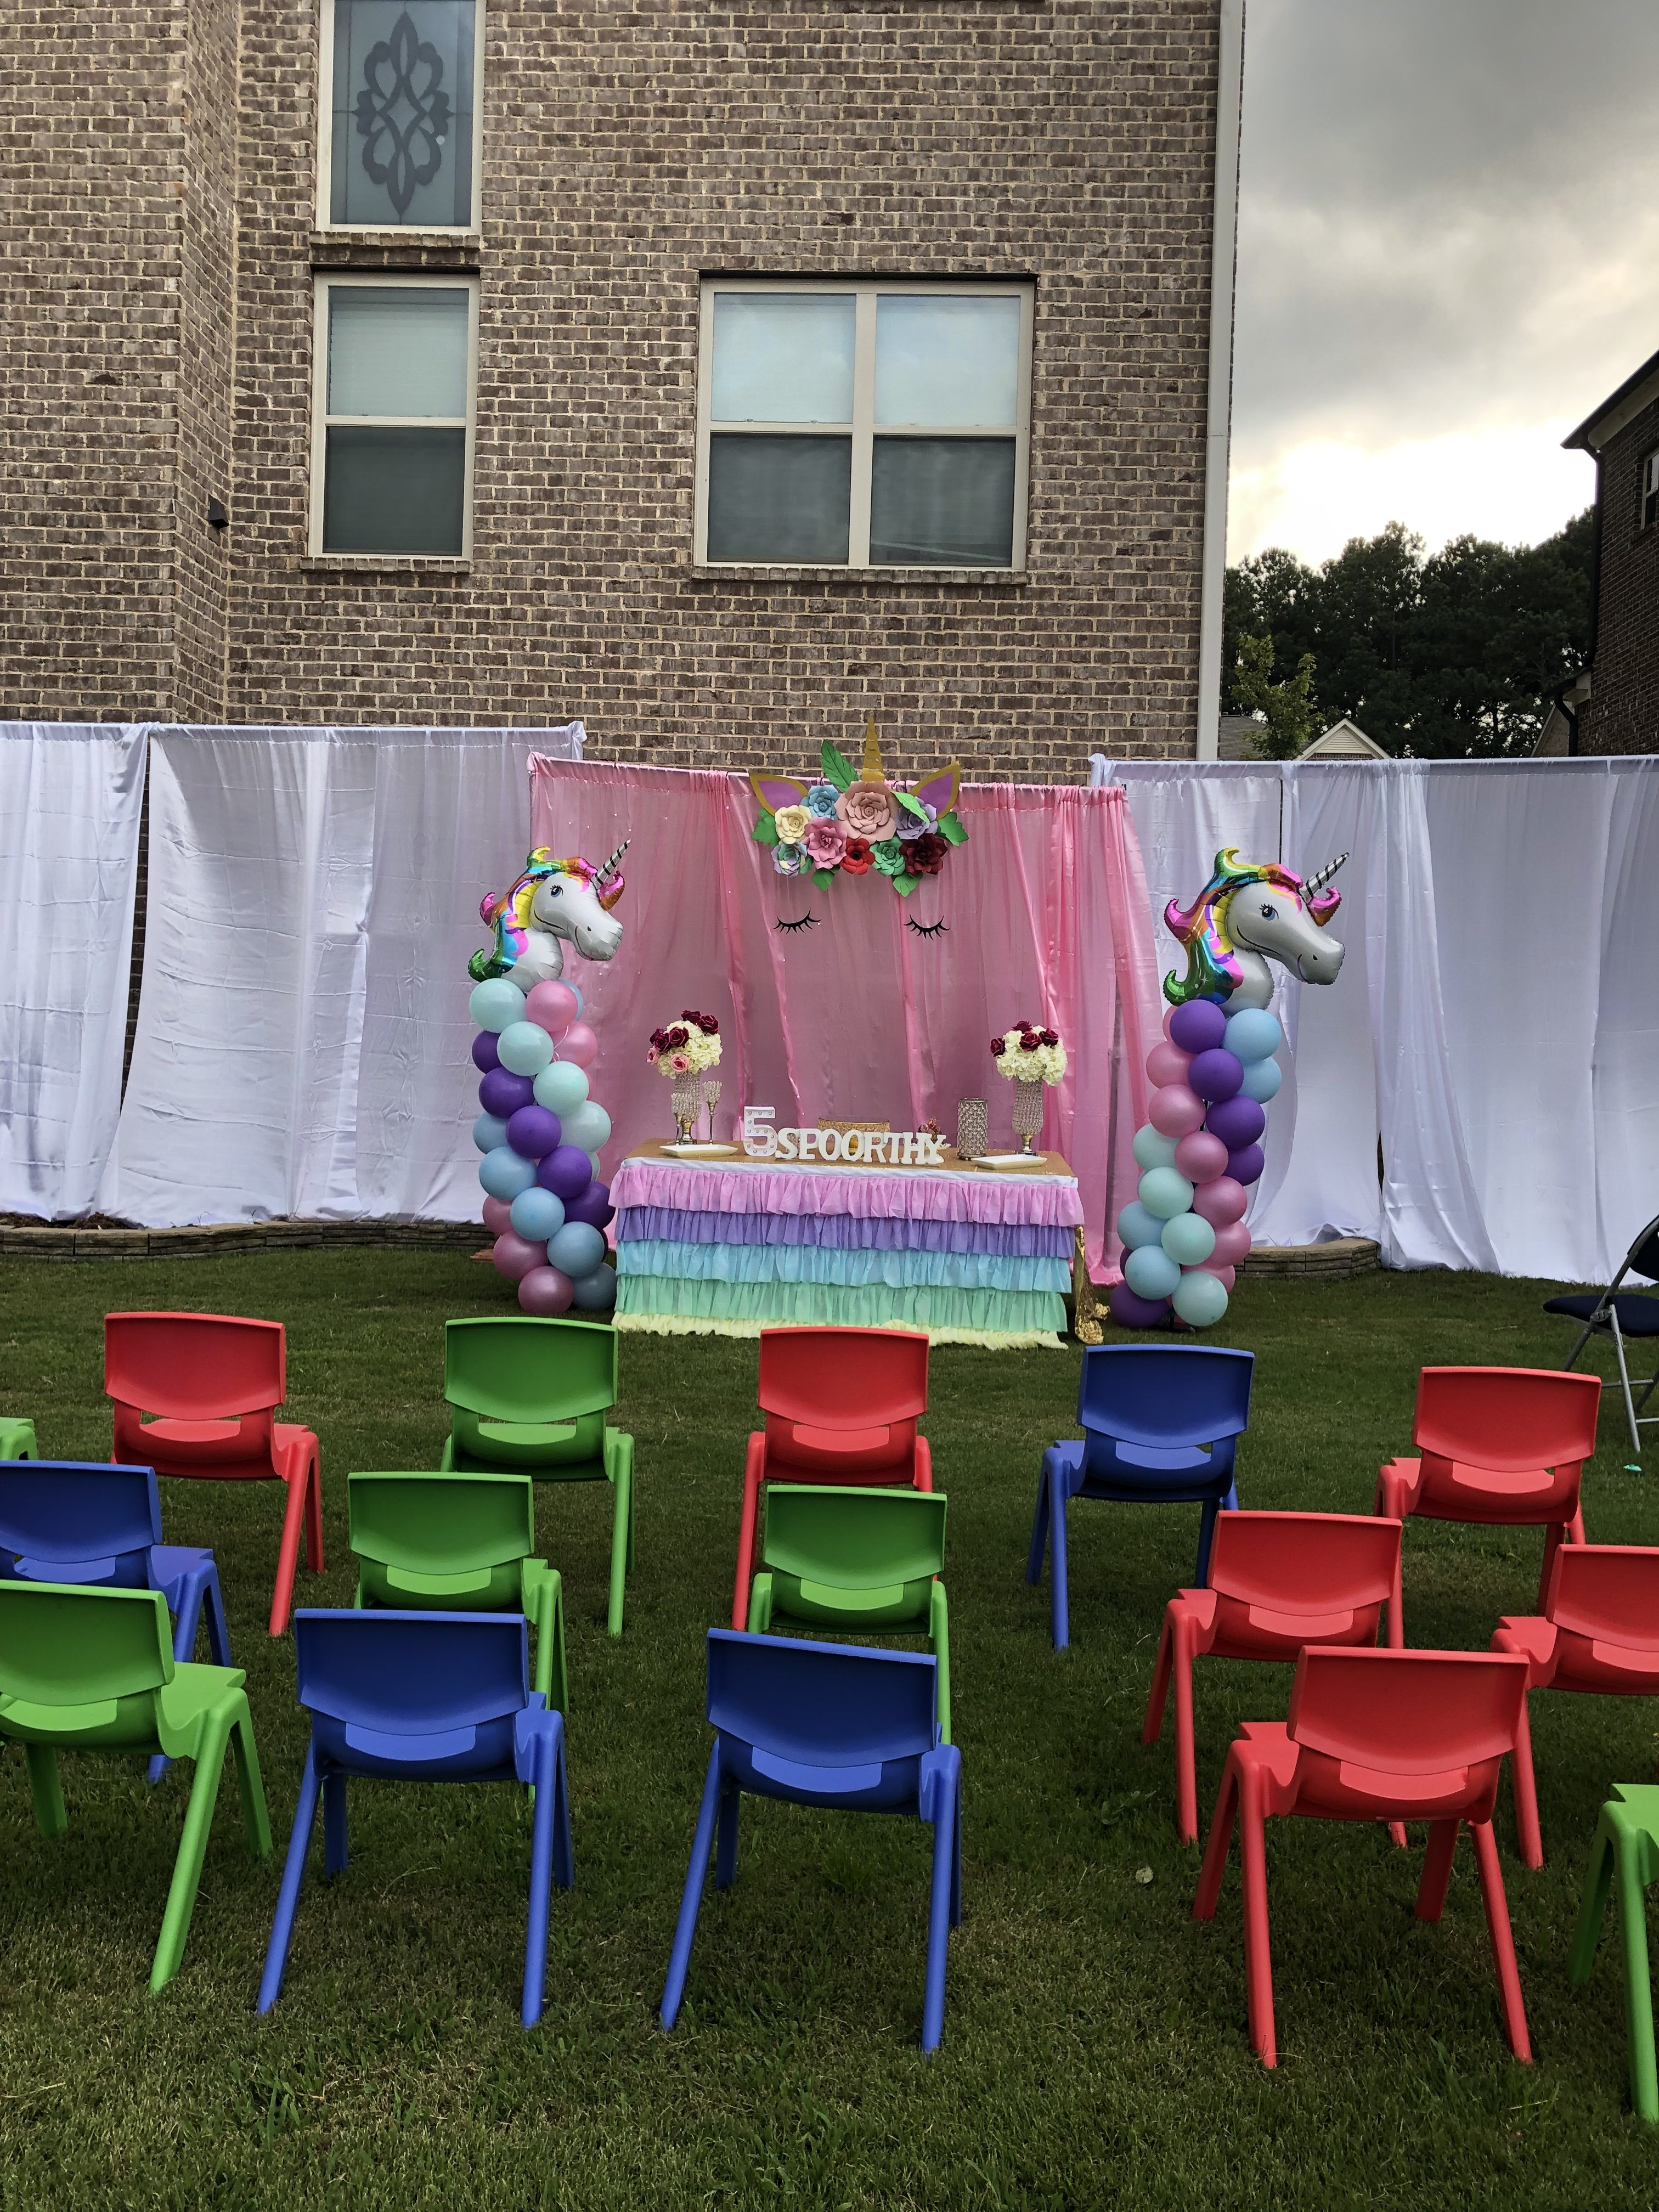 Unicorn Theme Birthday Party Outdoor Decorations In Atlanta Anju Events Decorations Best Party Event Planning And Decorations In Atlanta Birthday Parties Graduation Parties More